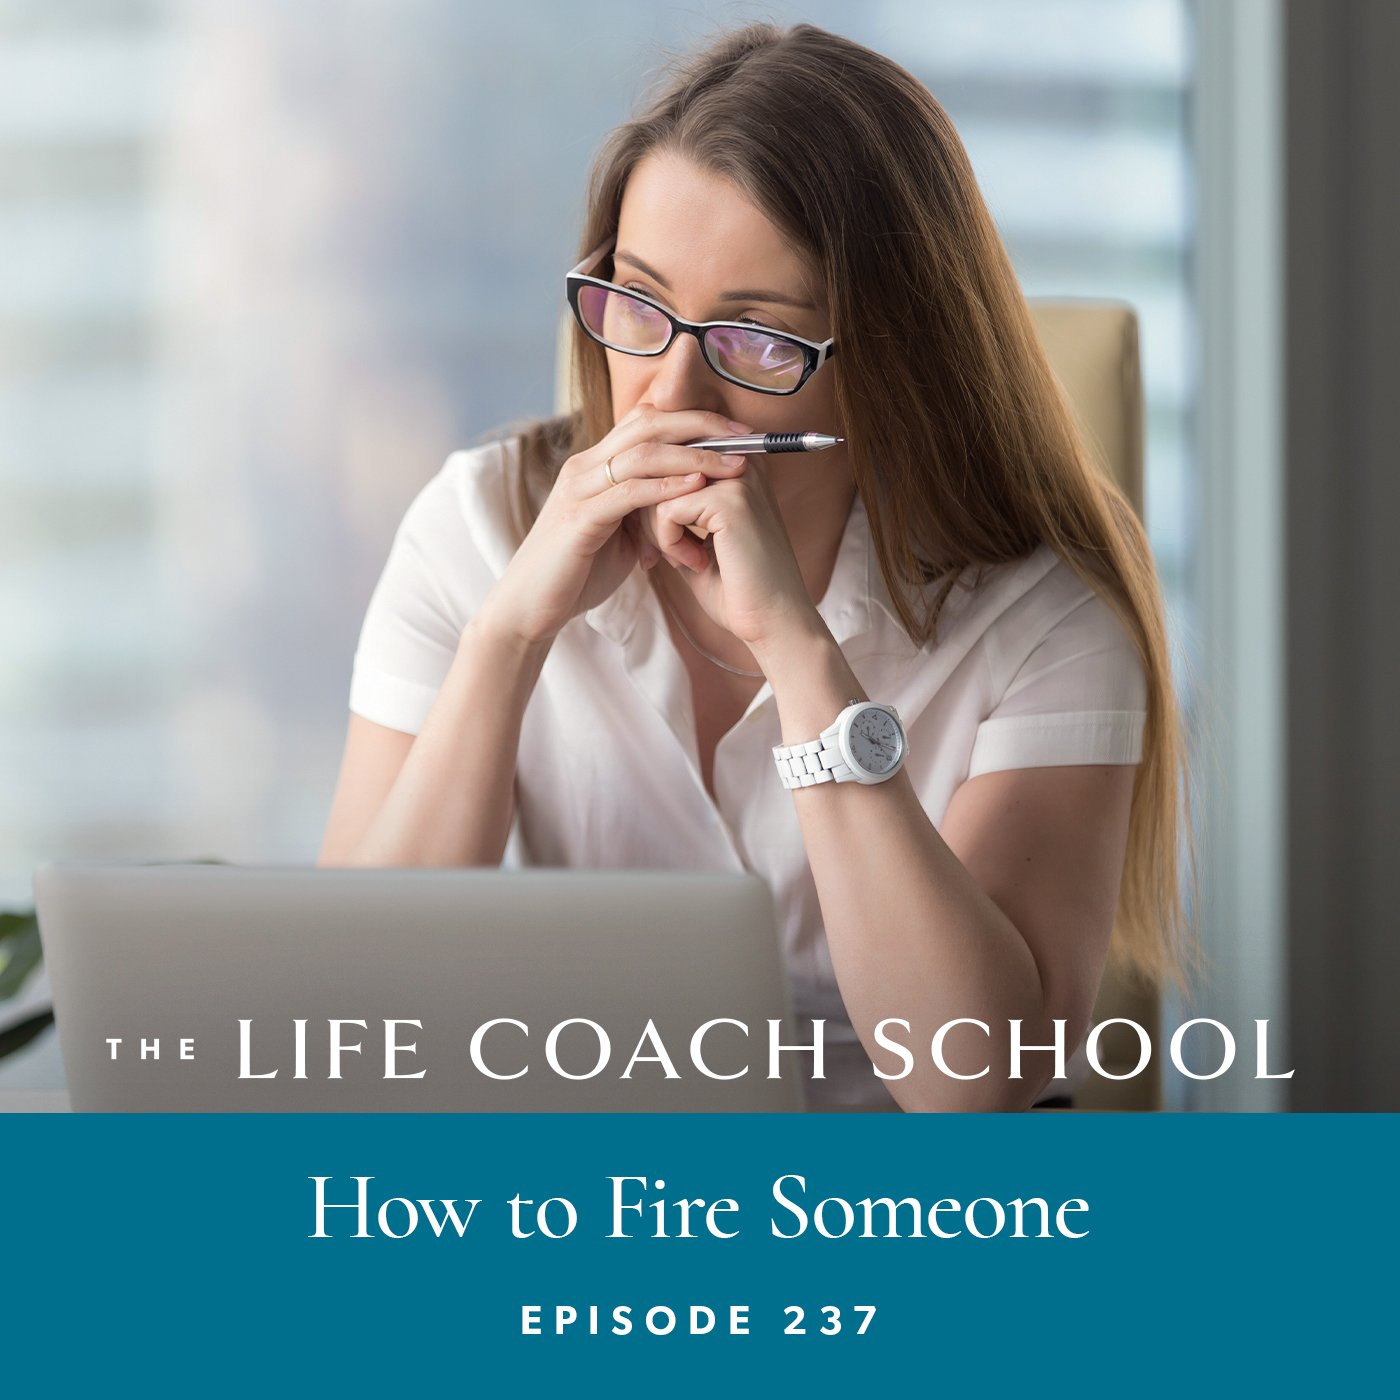 The Life Coach School Podcast with Brooke Castillo | Episode 237 | How to Fire Someone